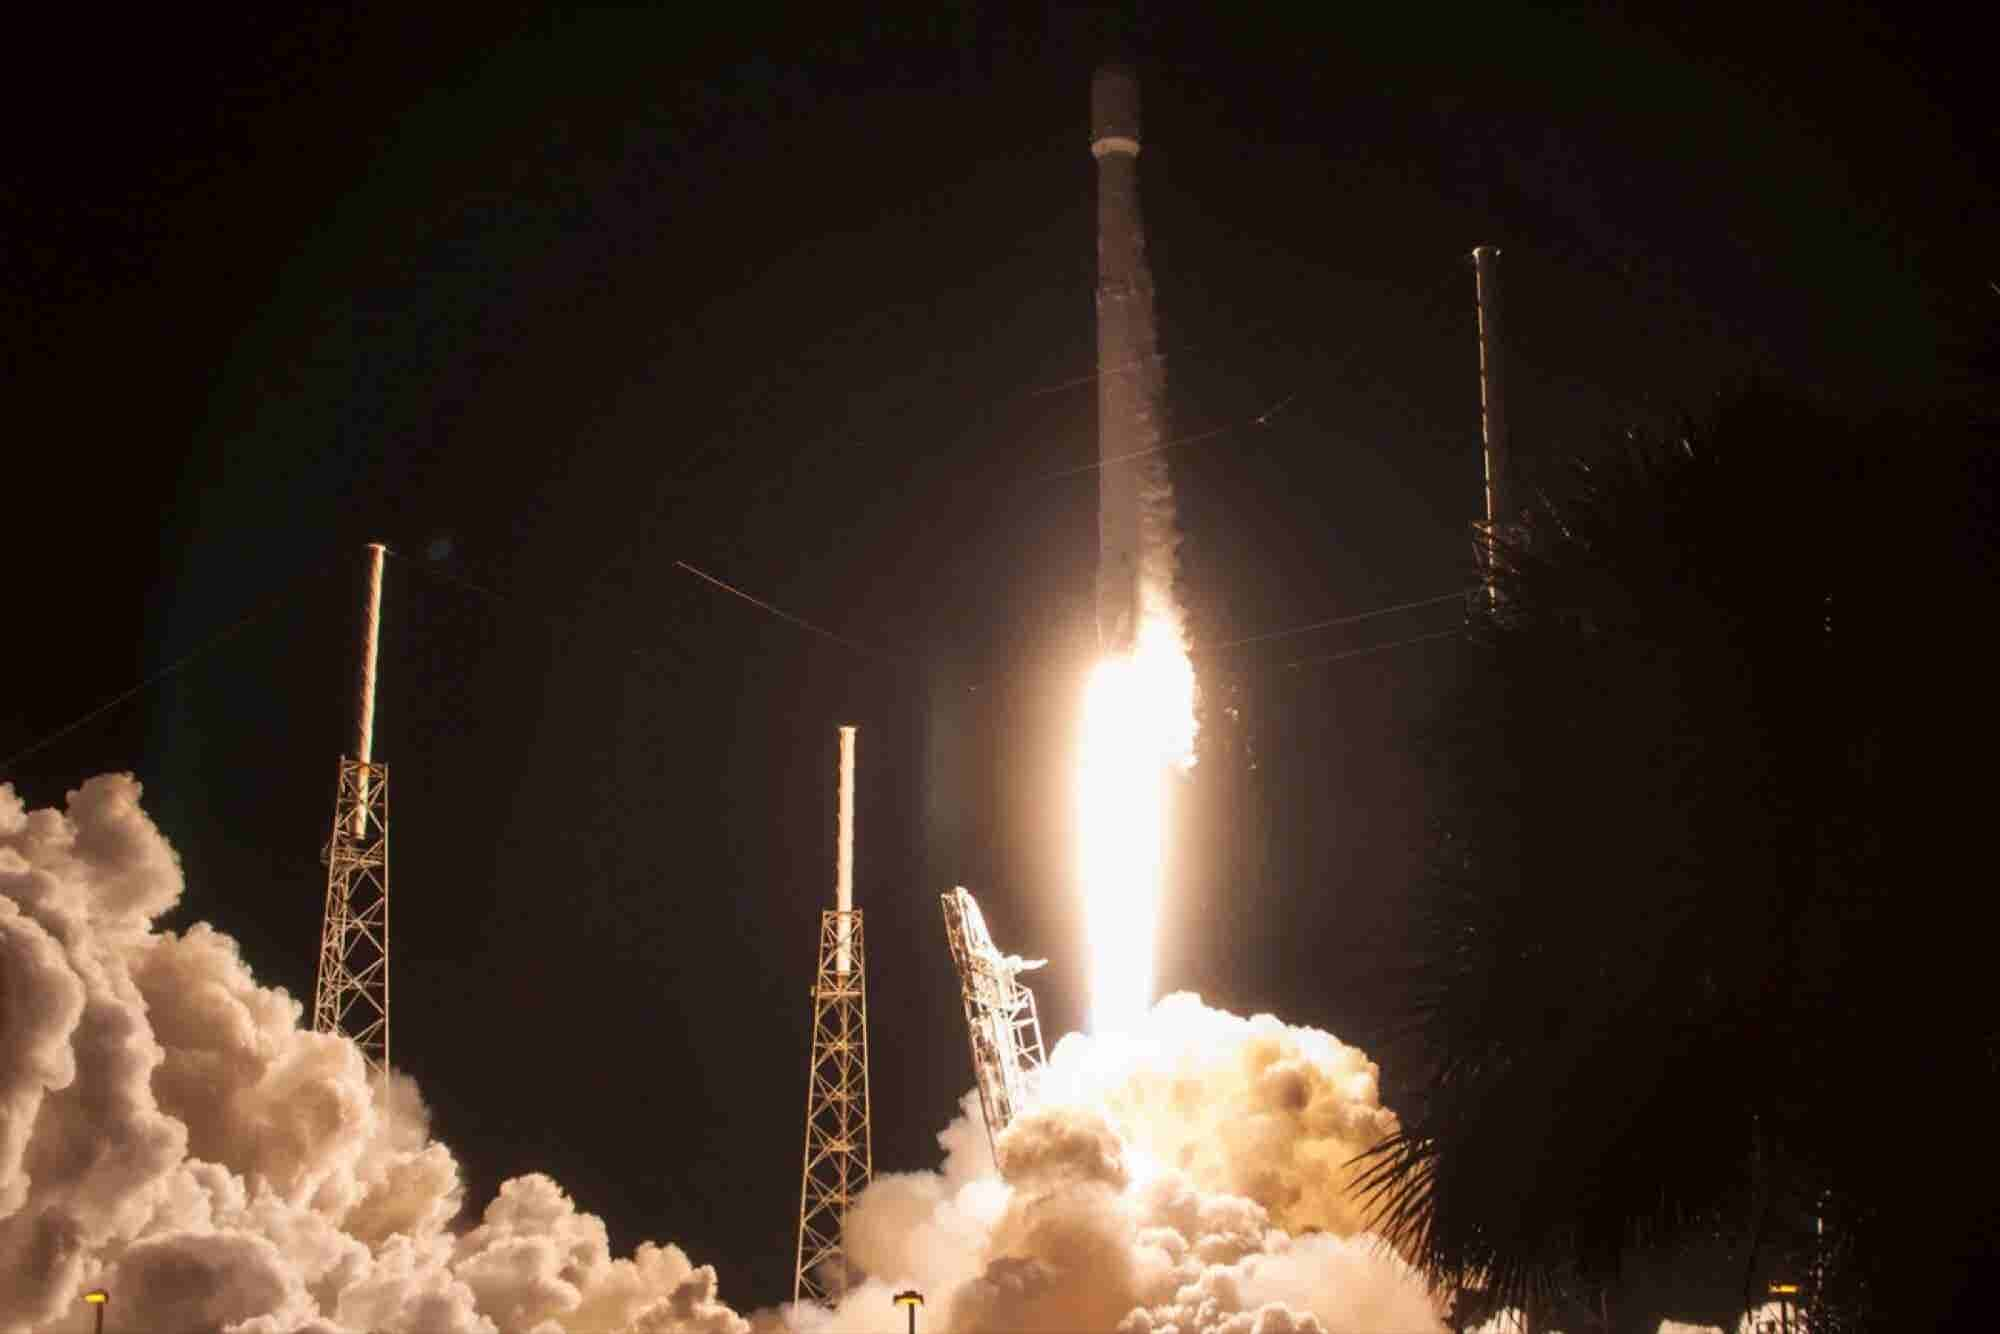 Elon Musk's SpaceX Launches Satellite, Lands Rocket Back on Drone Ship in Ocean